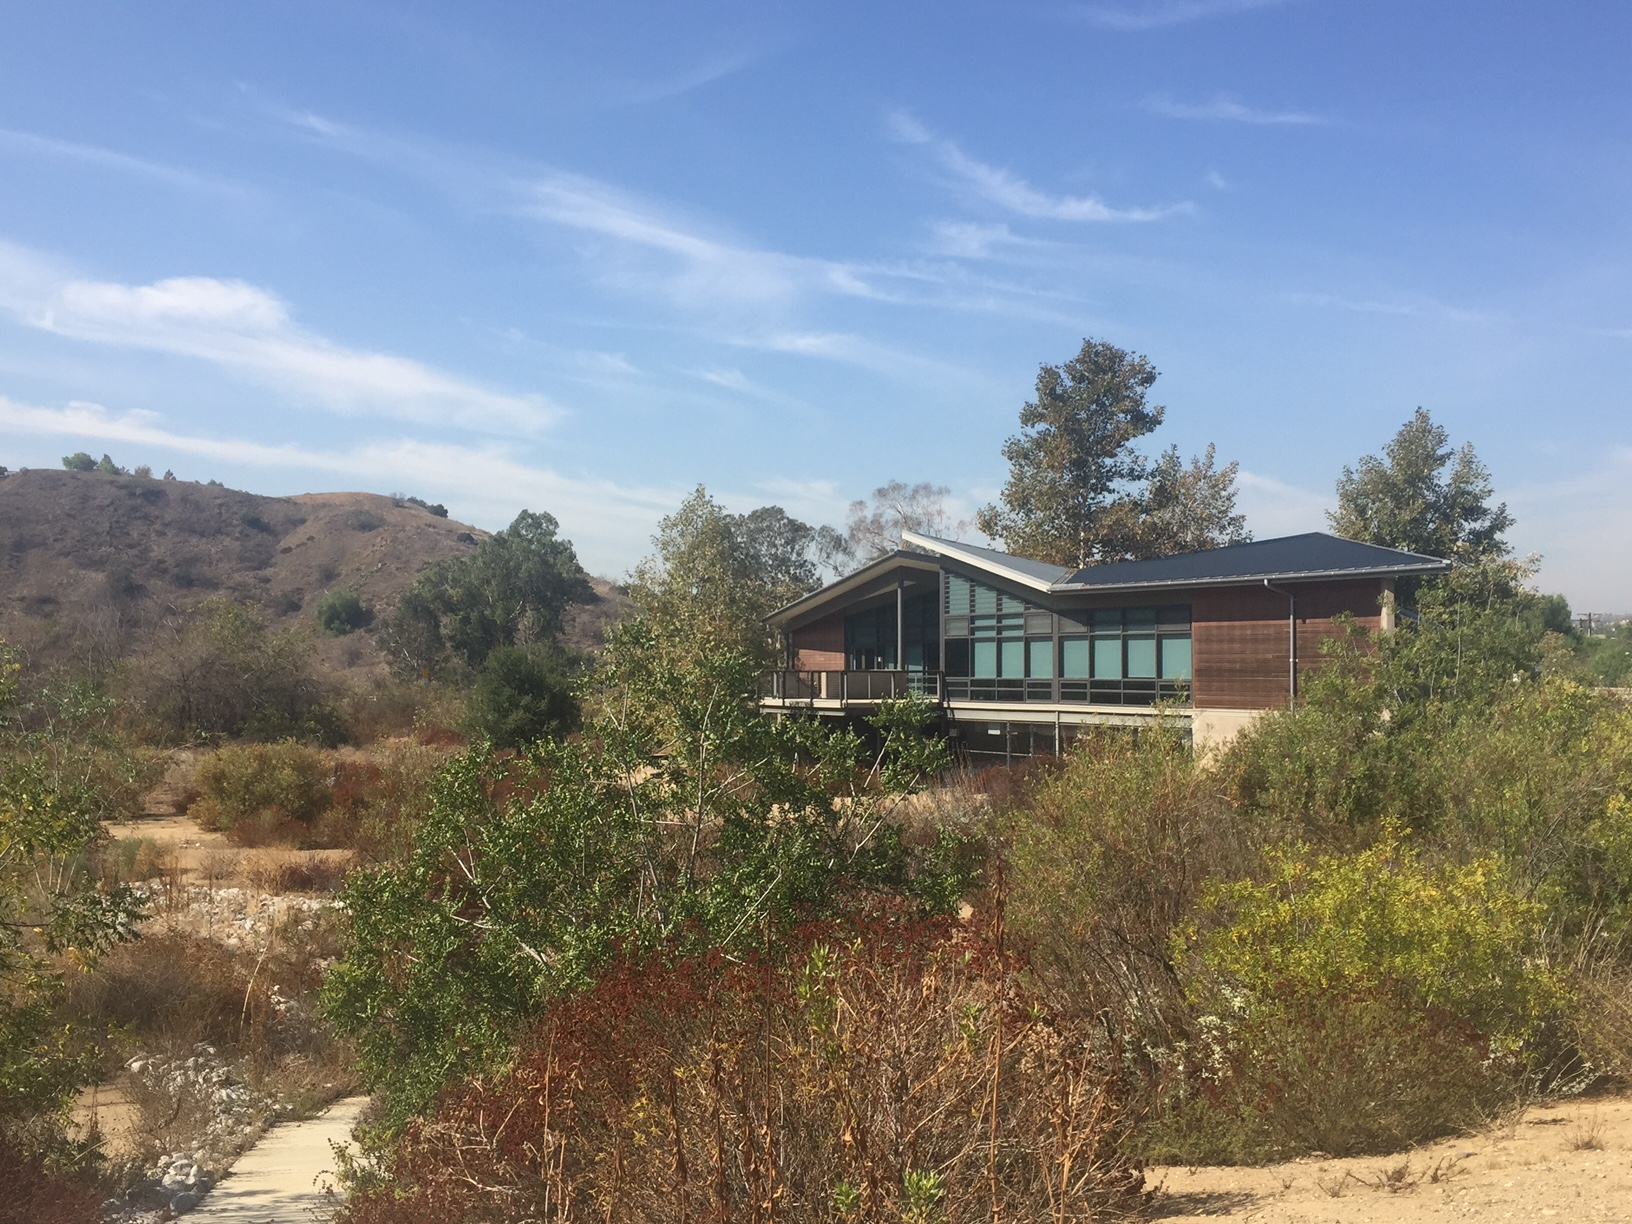 Chino Hills Discovery Center Is A Great Outdoor